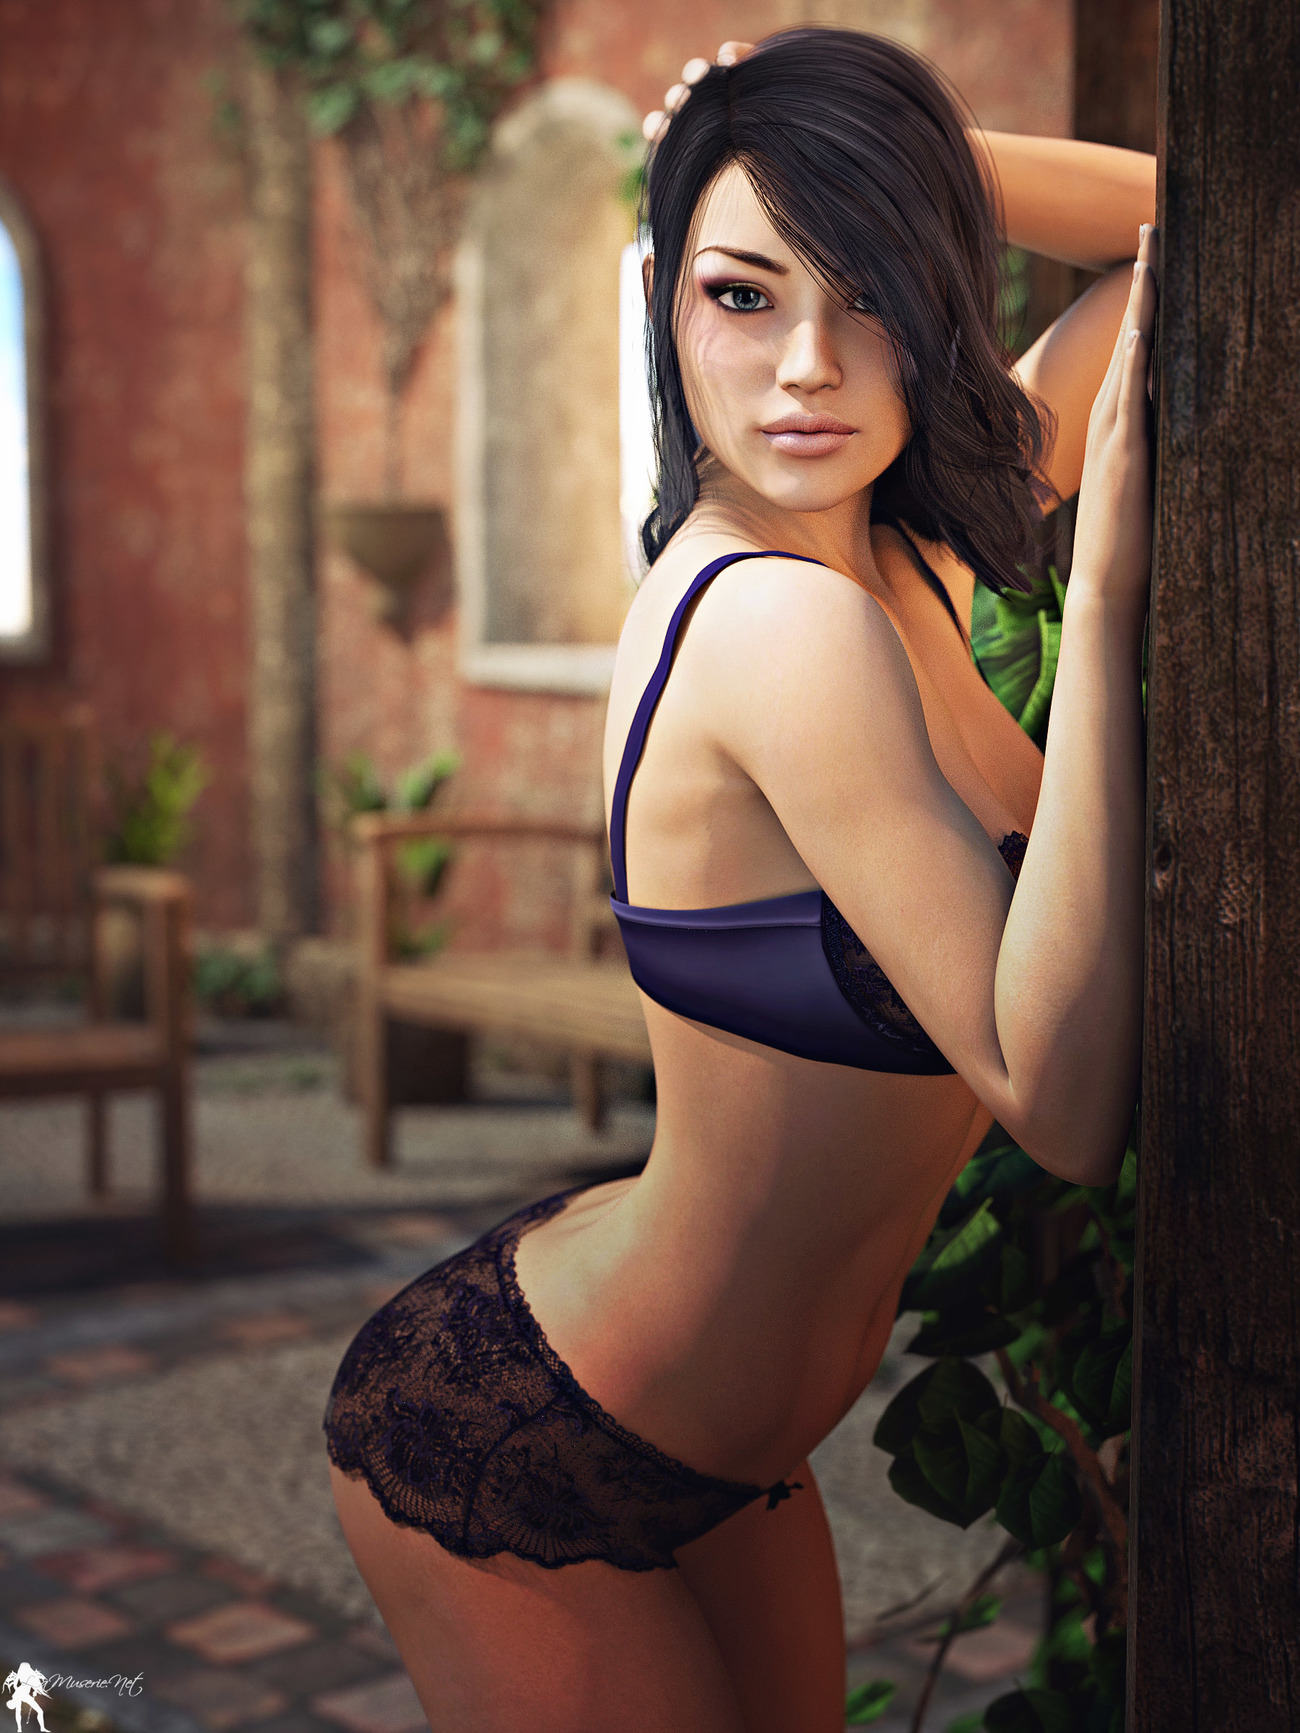 Babe Camille 5 by Lamuserie